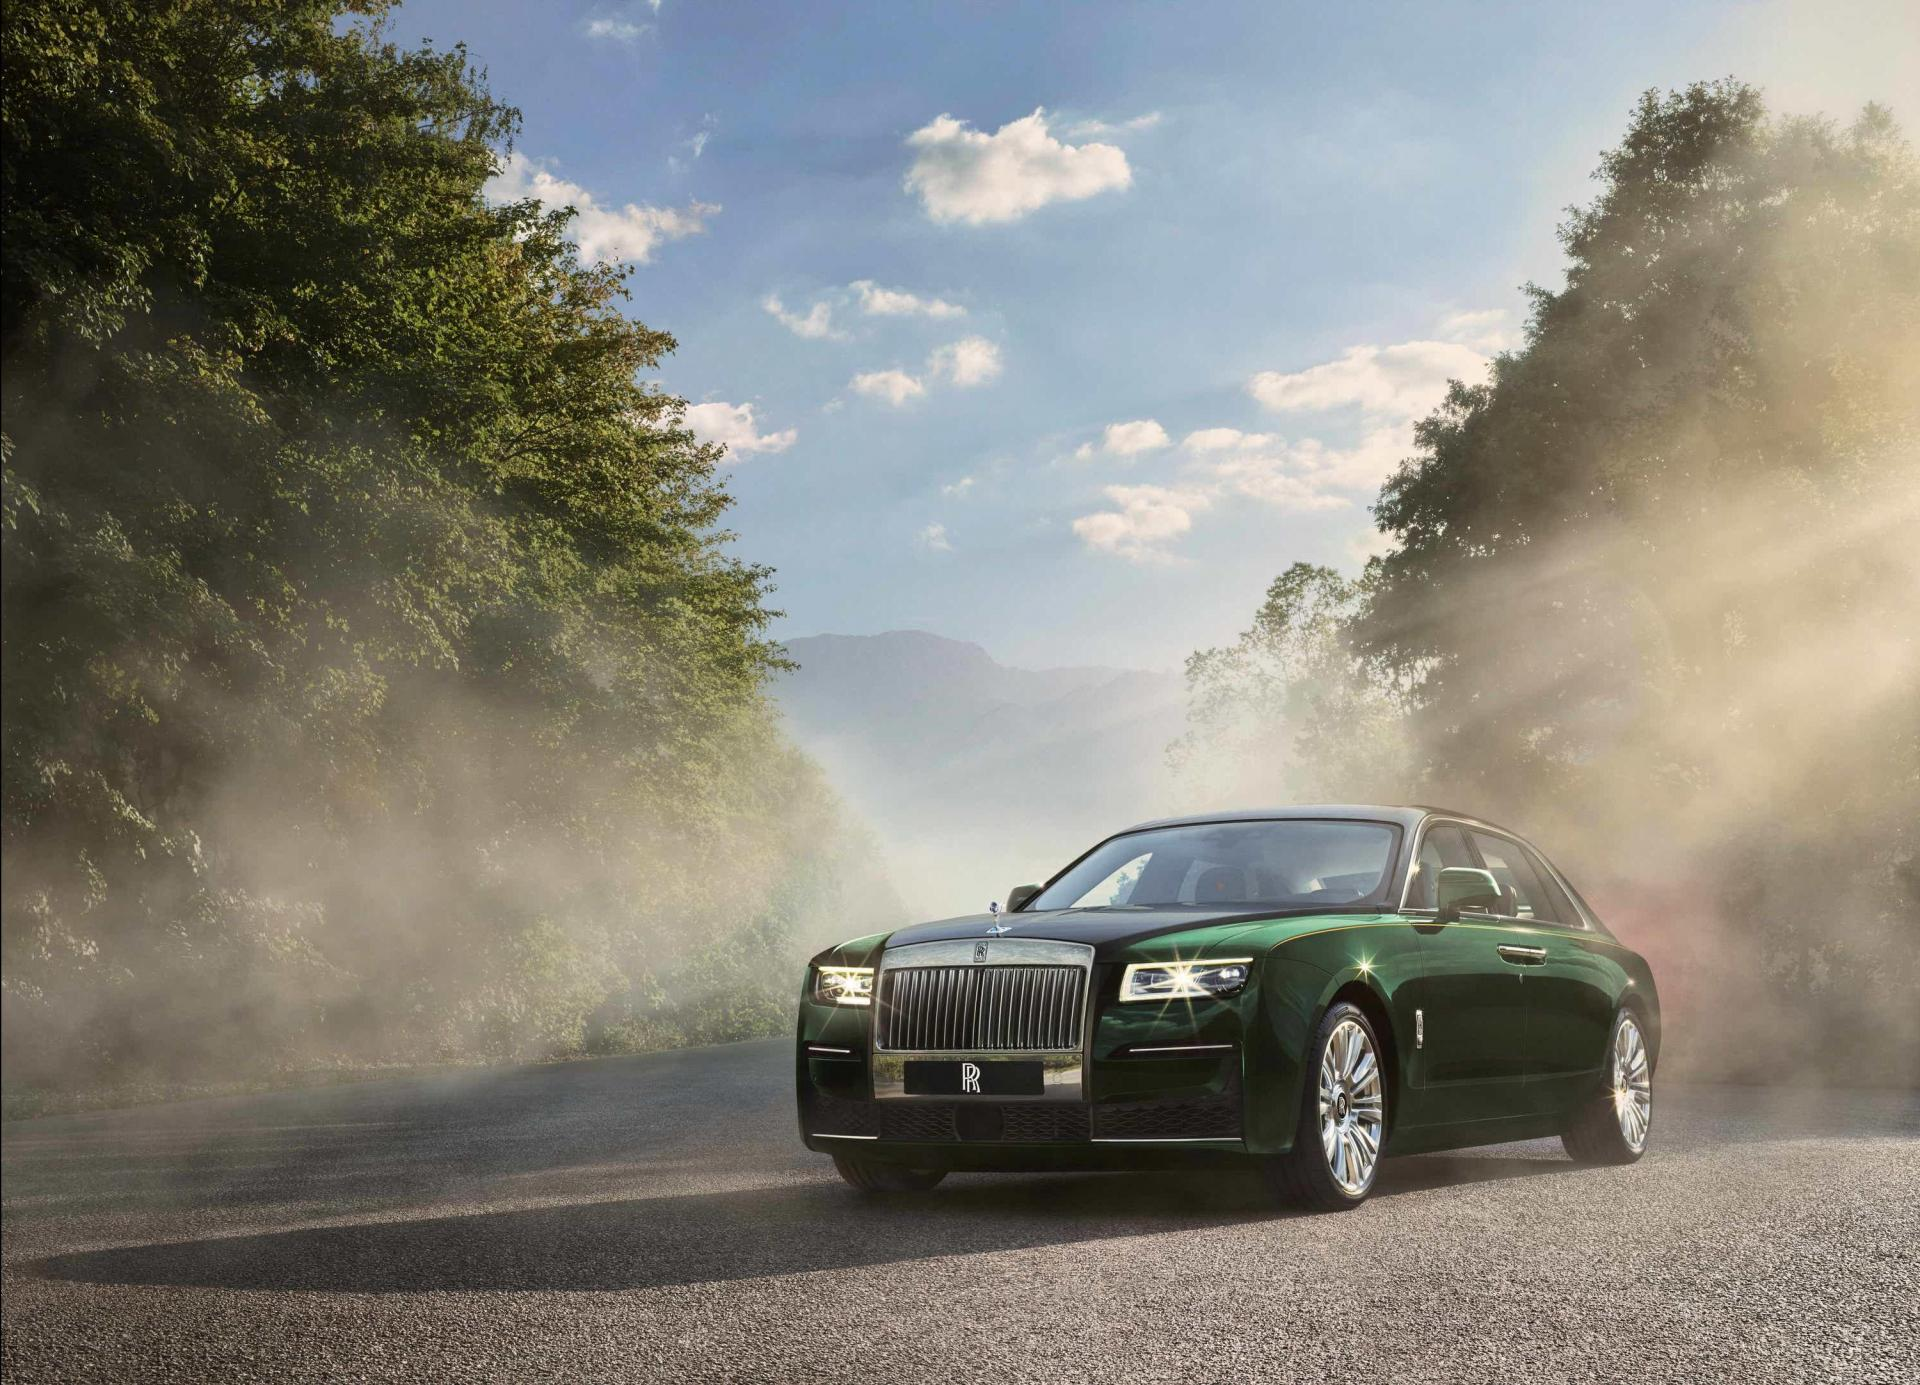 The Rolls-Royce Ghost Extended is considerably longer than the regular car.